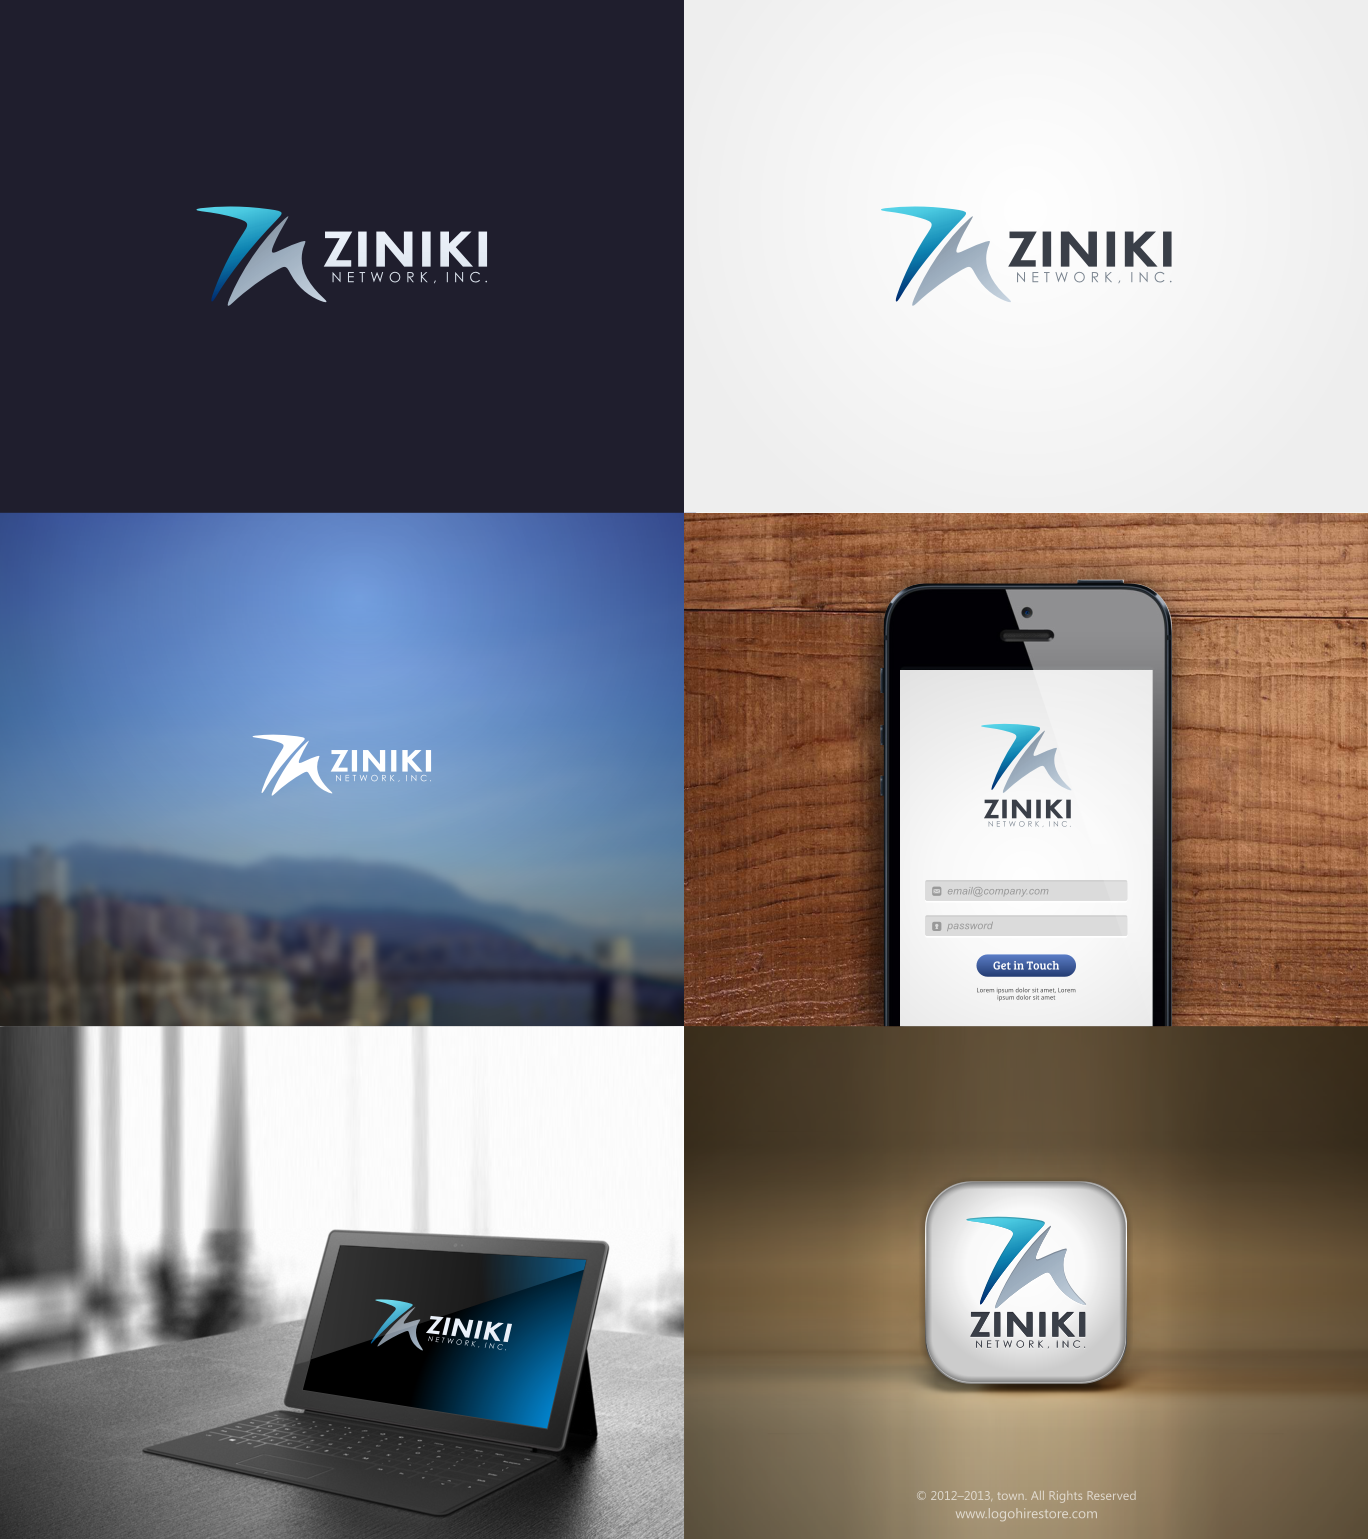 New logo wanted for Ziniki Network, Inc.